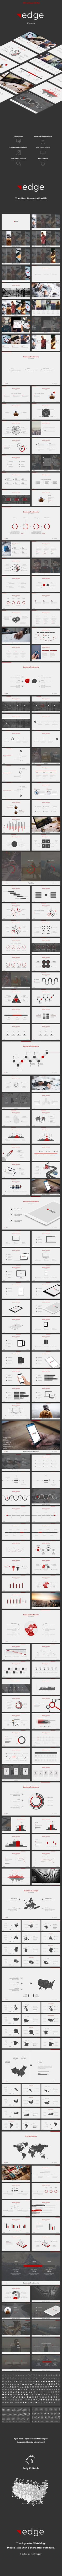 edge Keynote Template. Download here: http://graphicriver.net/item/edge-keynote/16585854?ref=ksioks